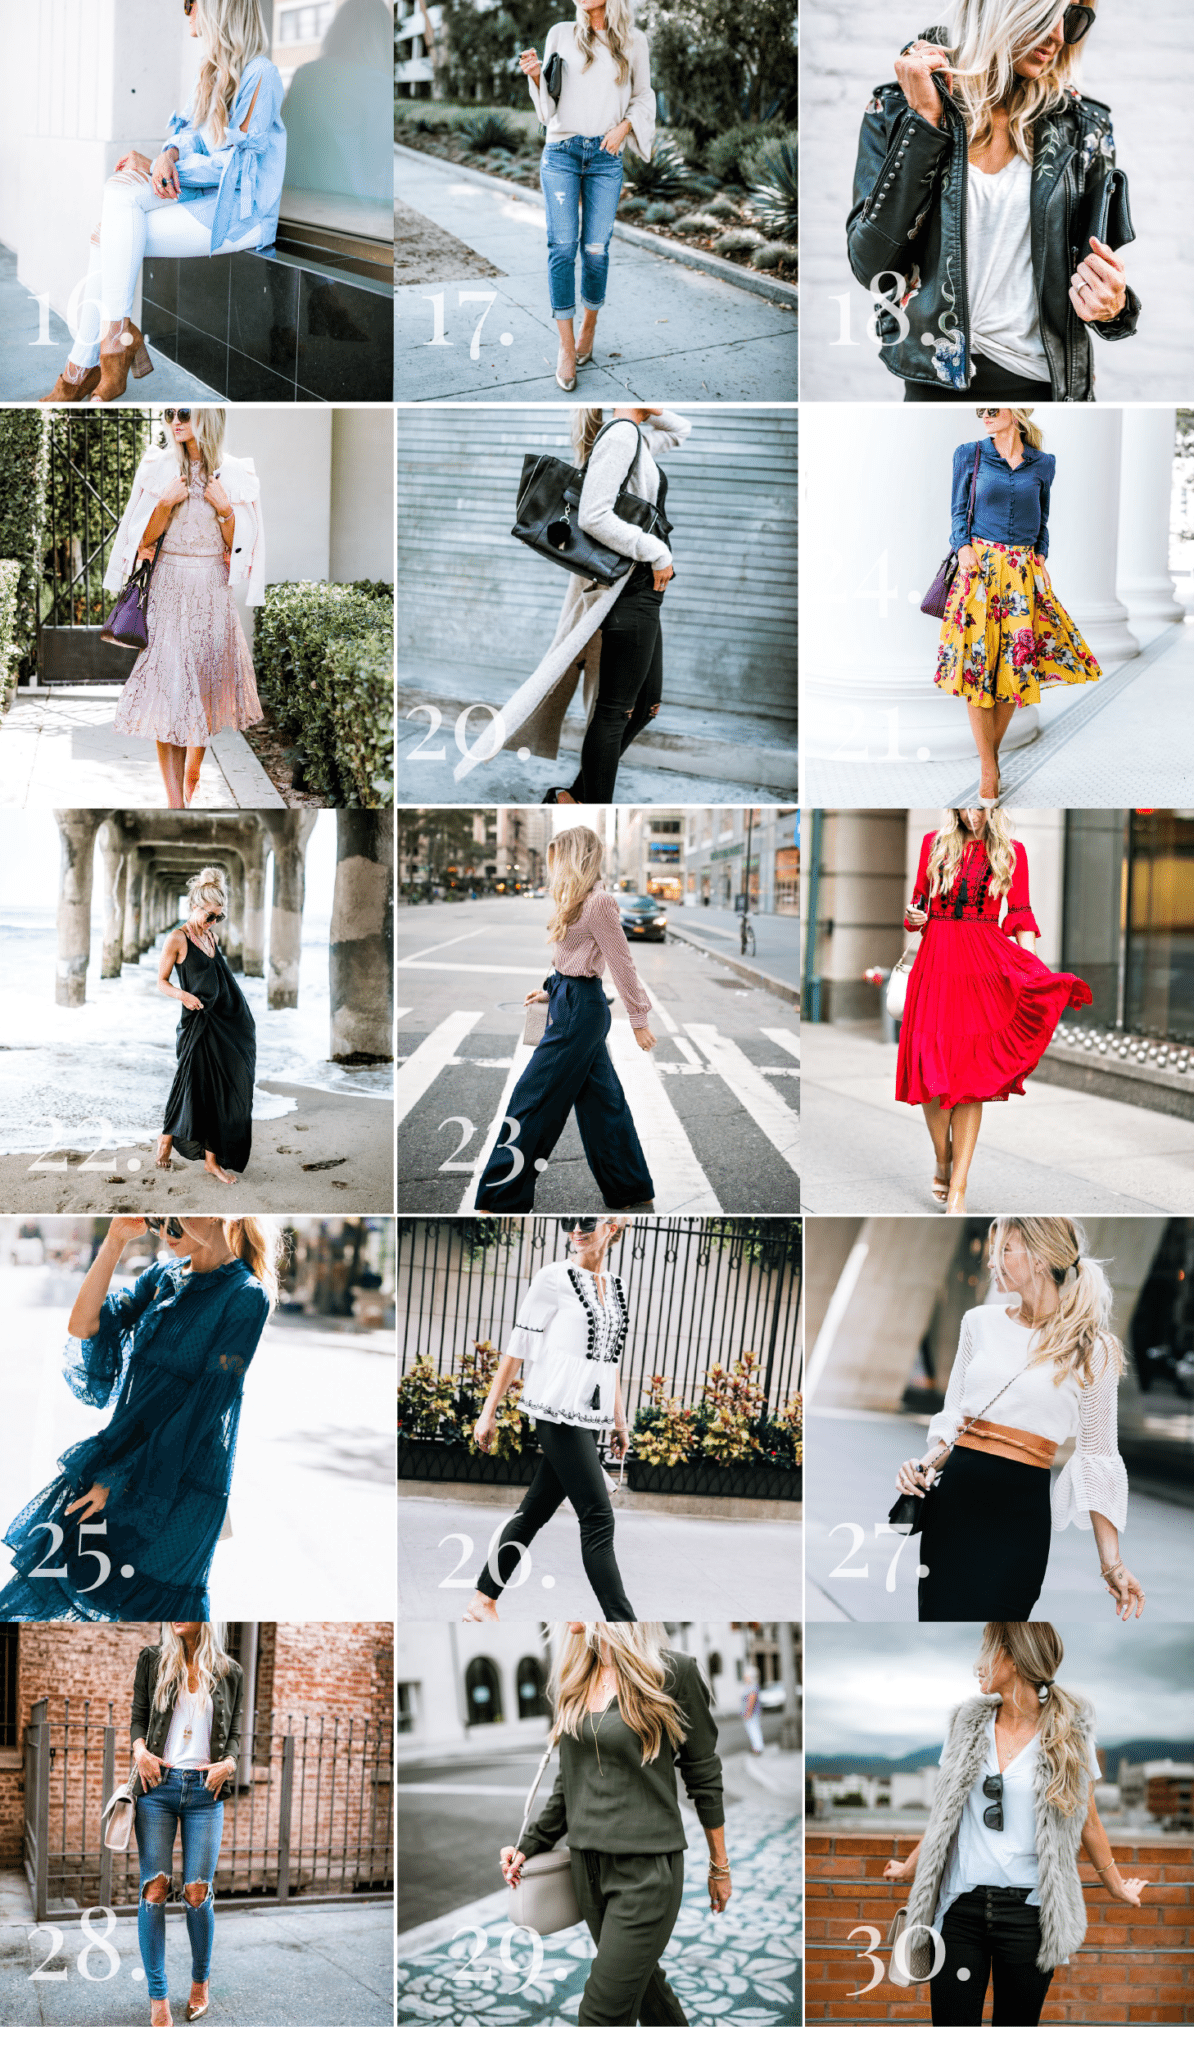 Best Outfits of 2017